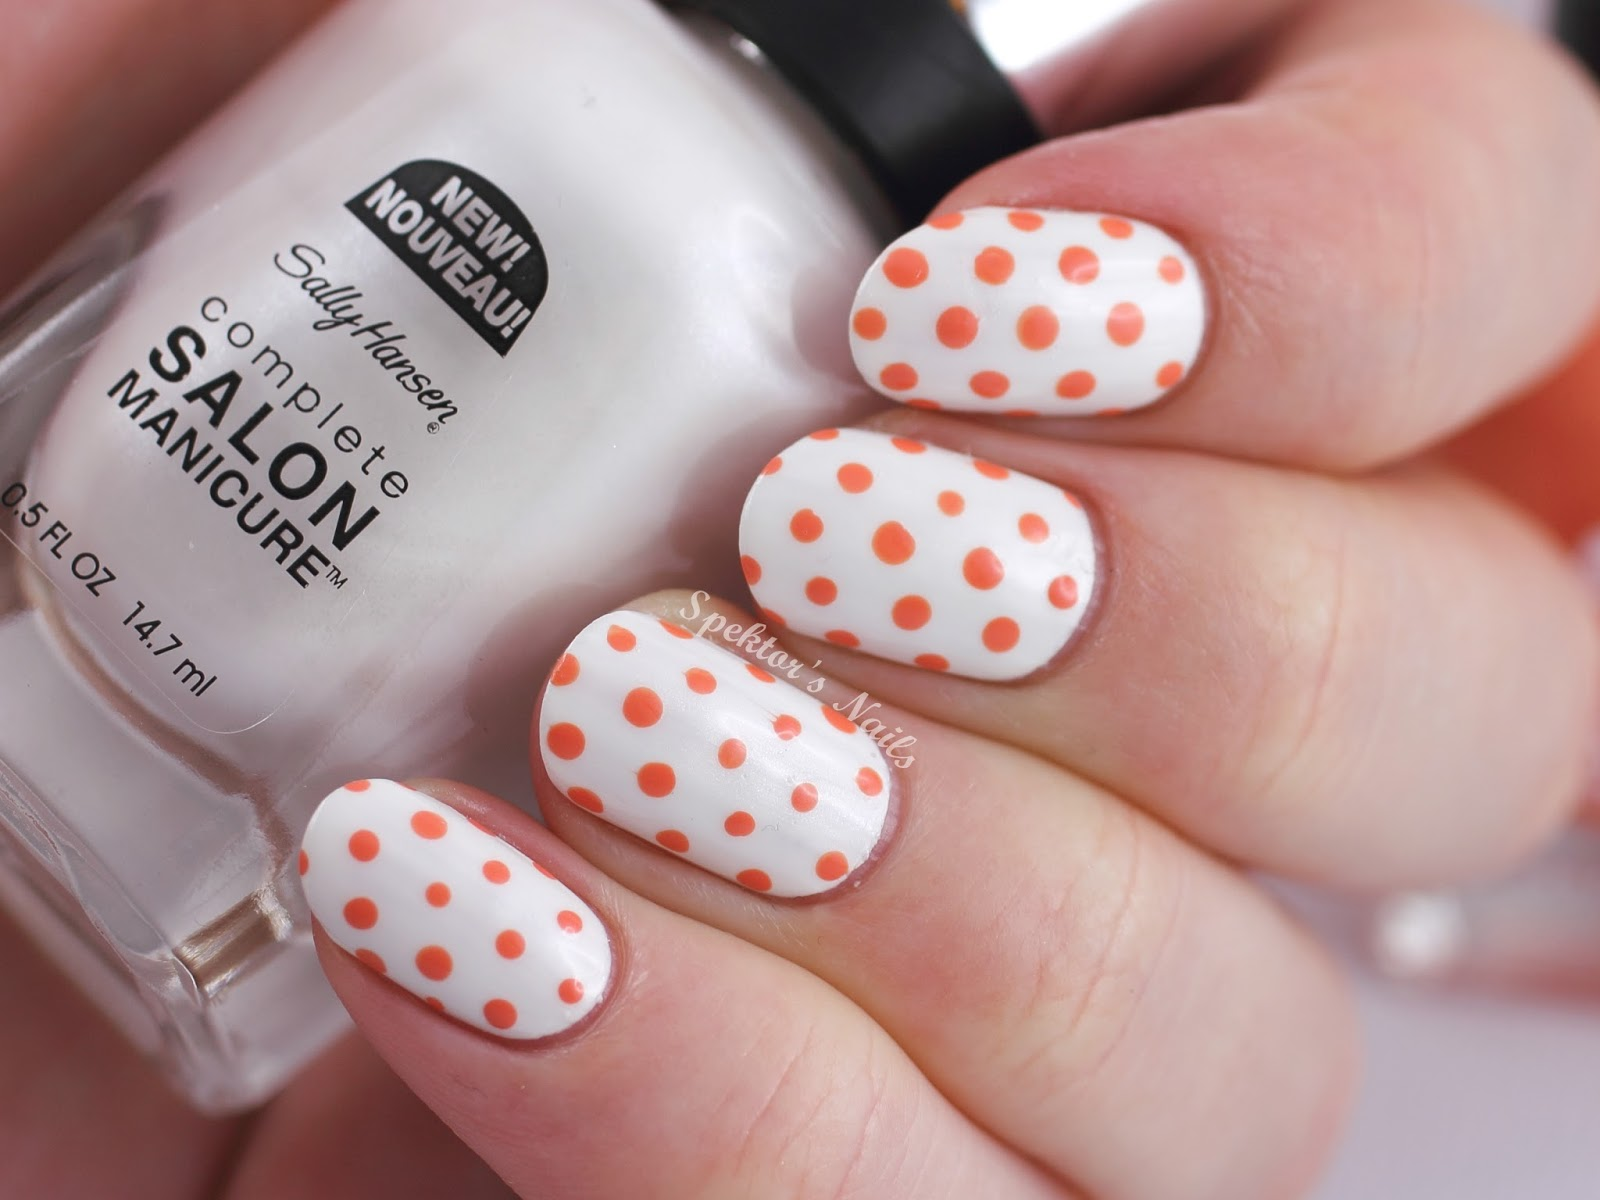 Peachy Polka Dots feat. Sally Hansen Bleach Babe Tahitian Sunset